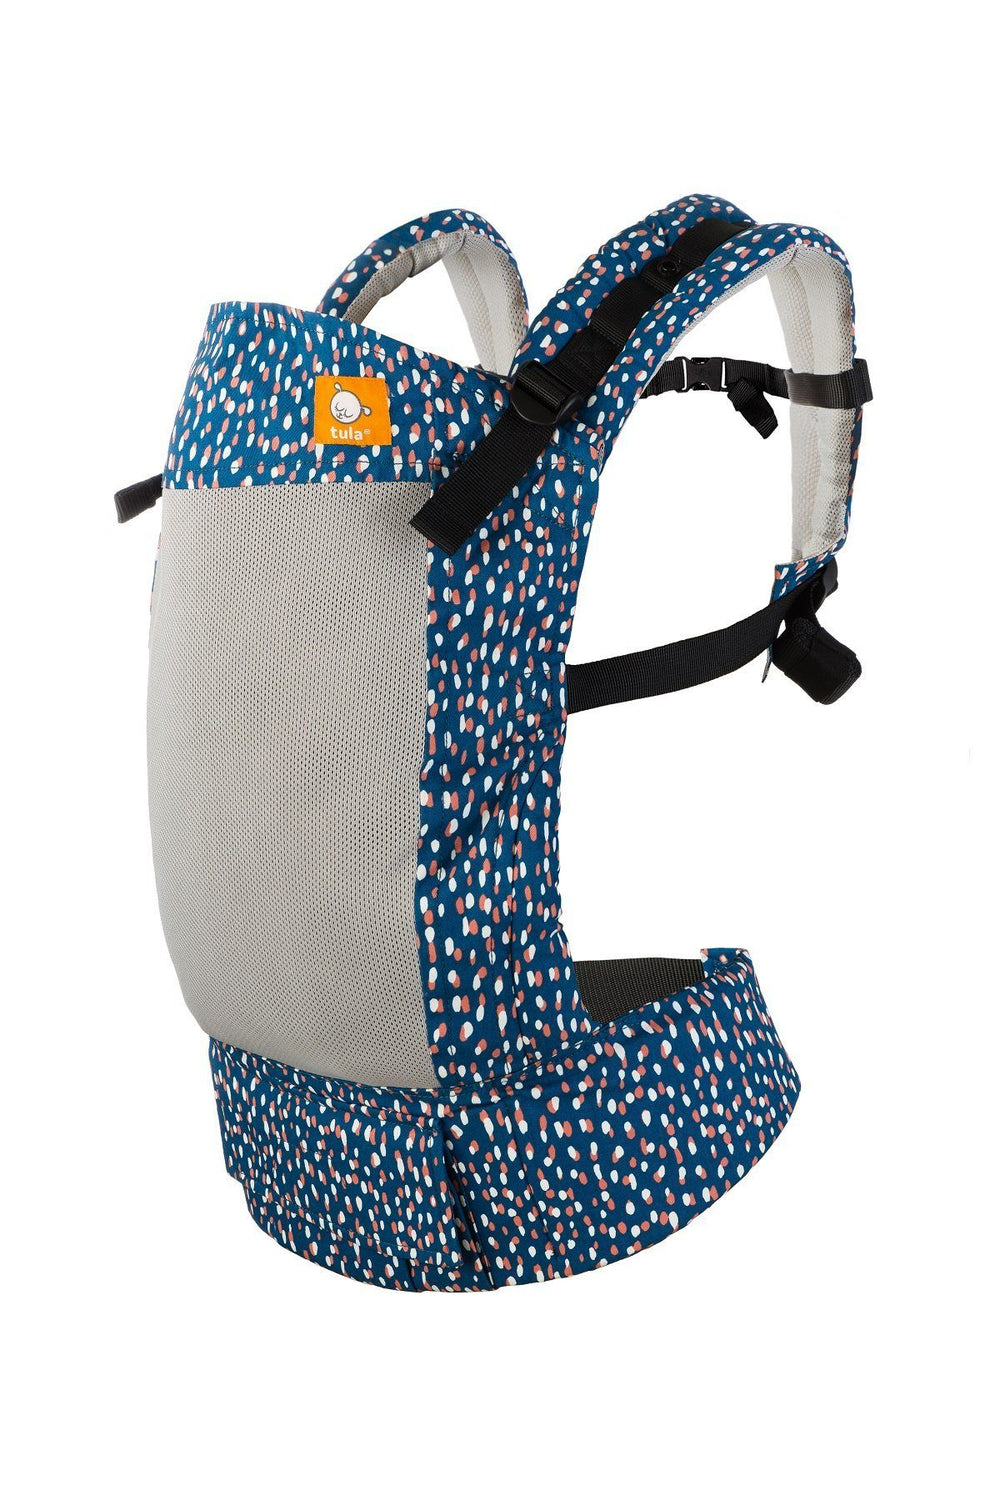 Maya Tula Toddler Coast-Buckle Carrier-Baby Tula- Little Zen One US Babywearing baby carriers